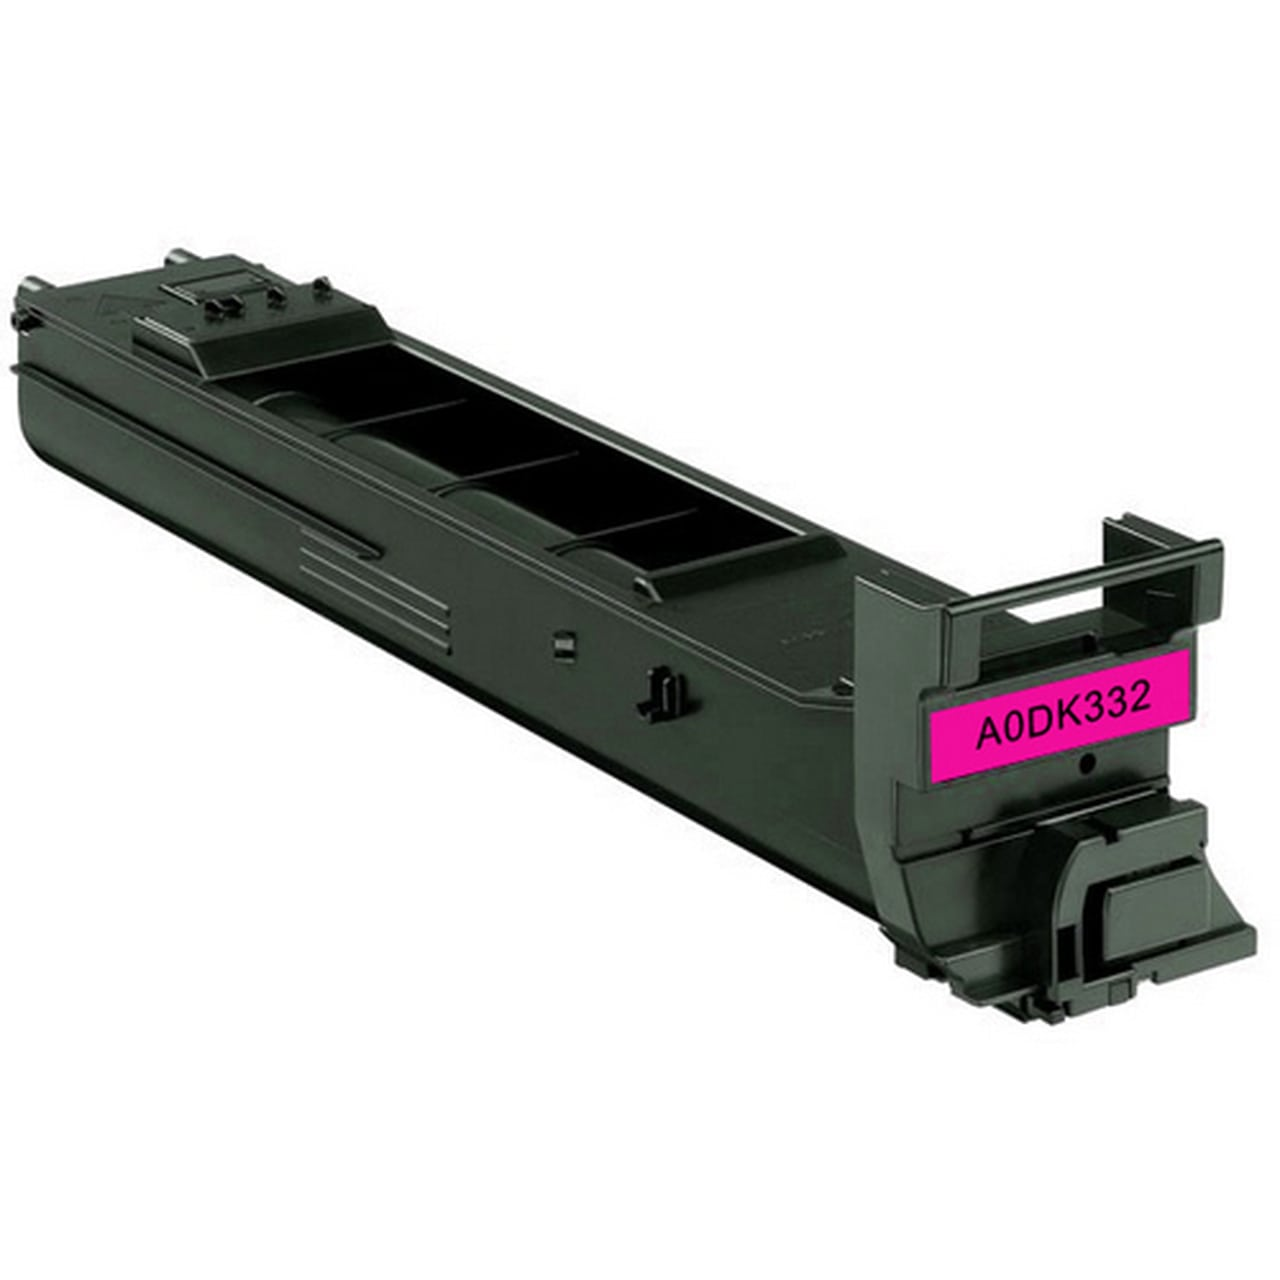 A0DK332 Toner Cartridge - Konica-Minolta Remanufactured  (Magenta)